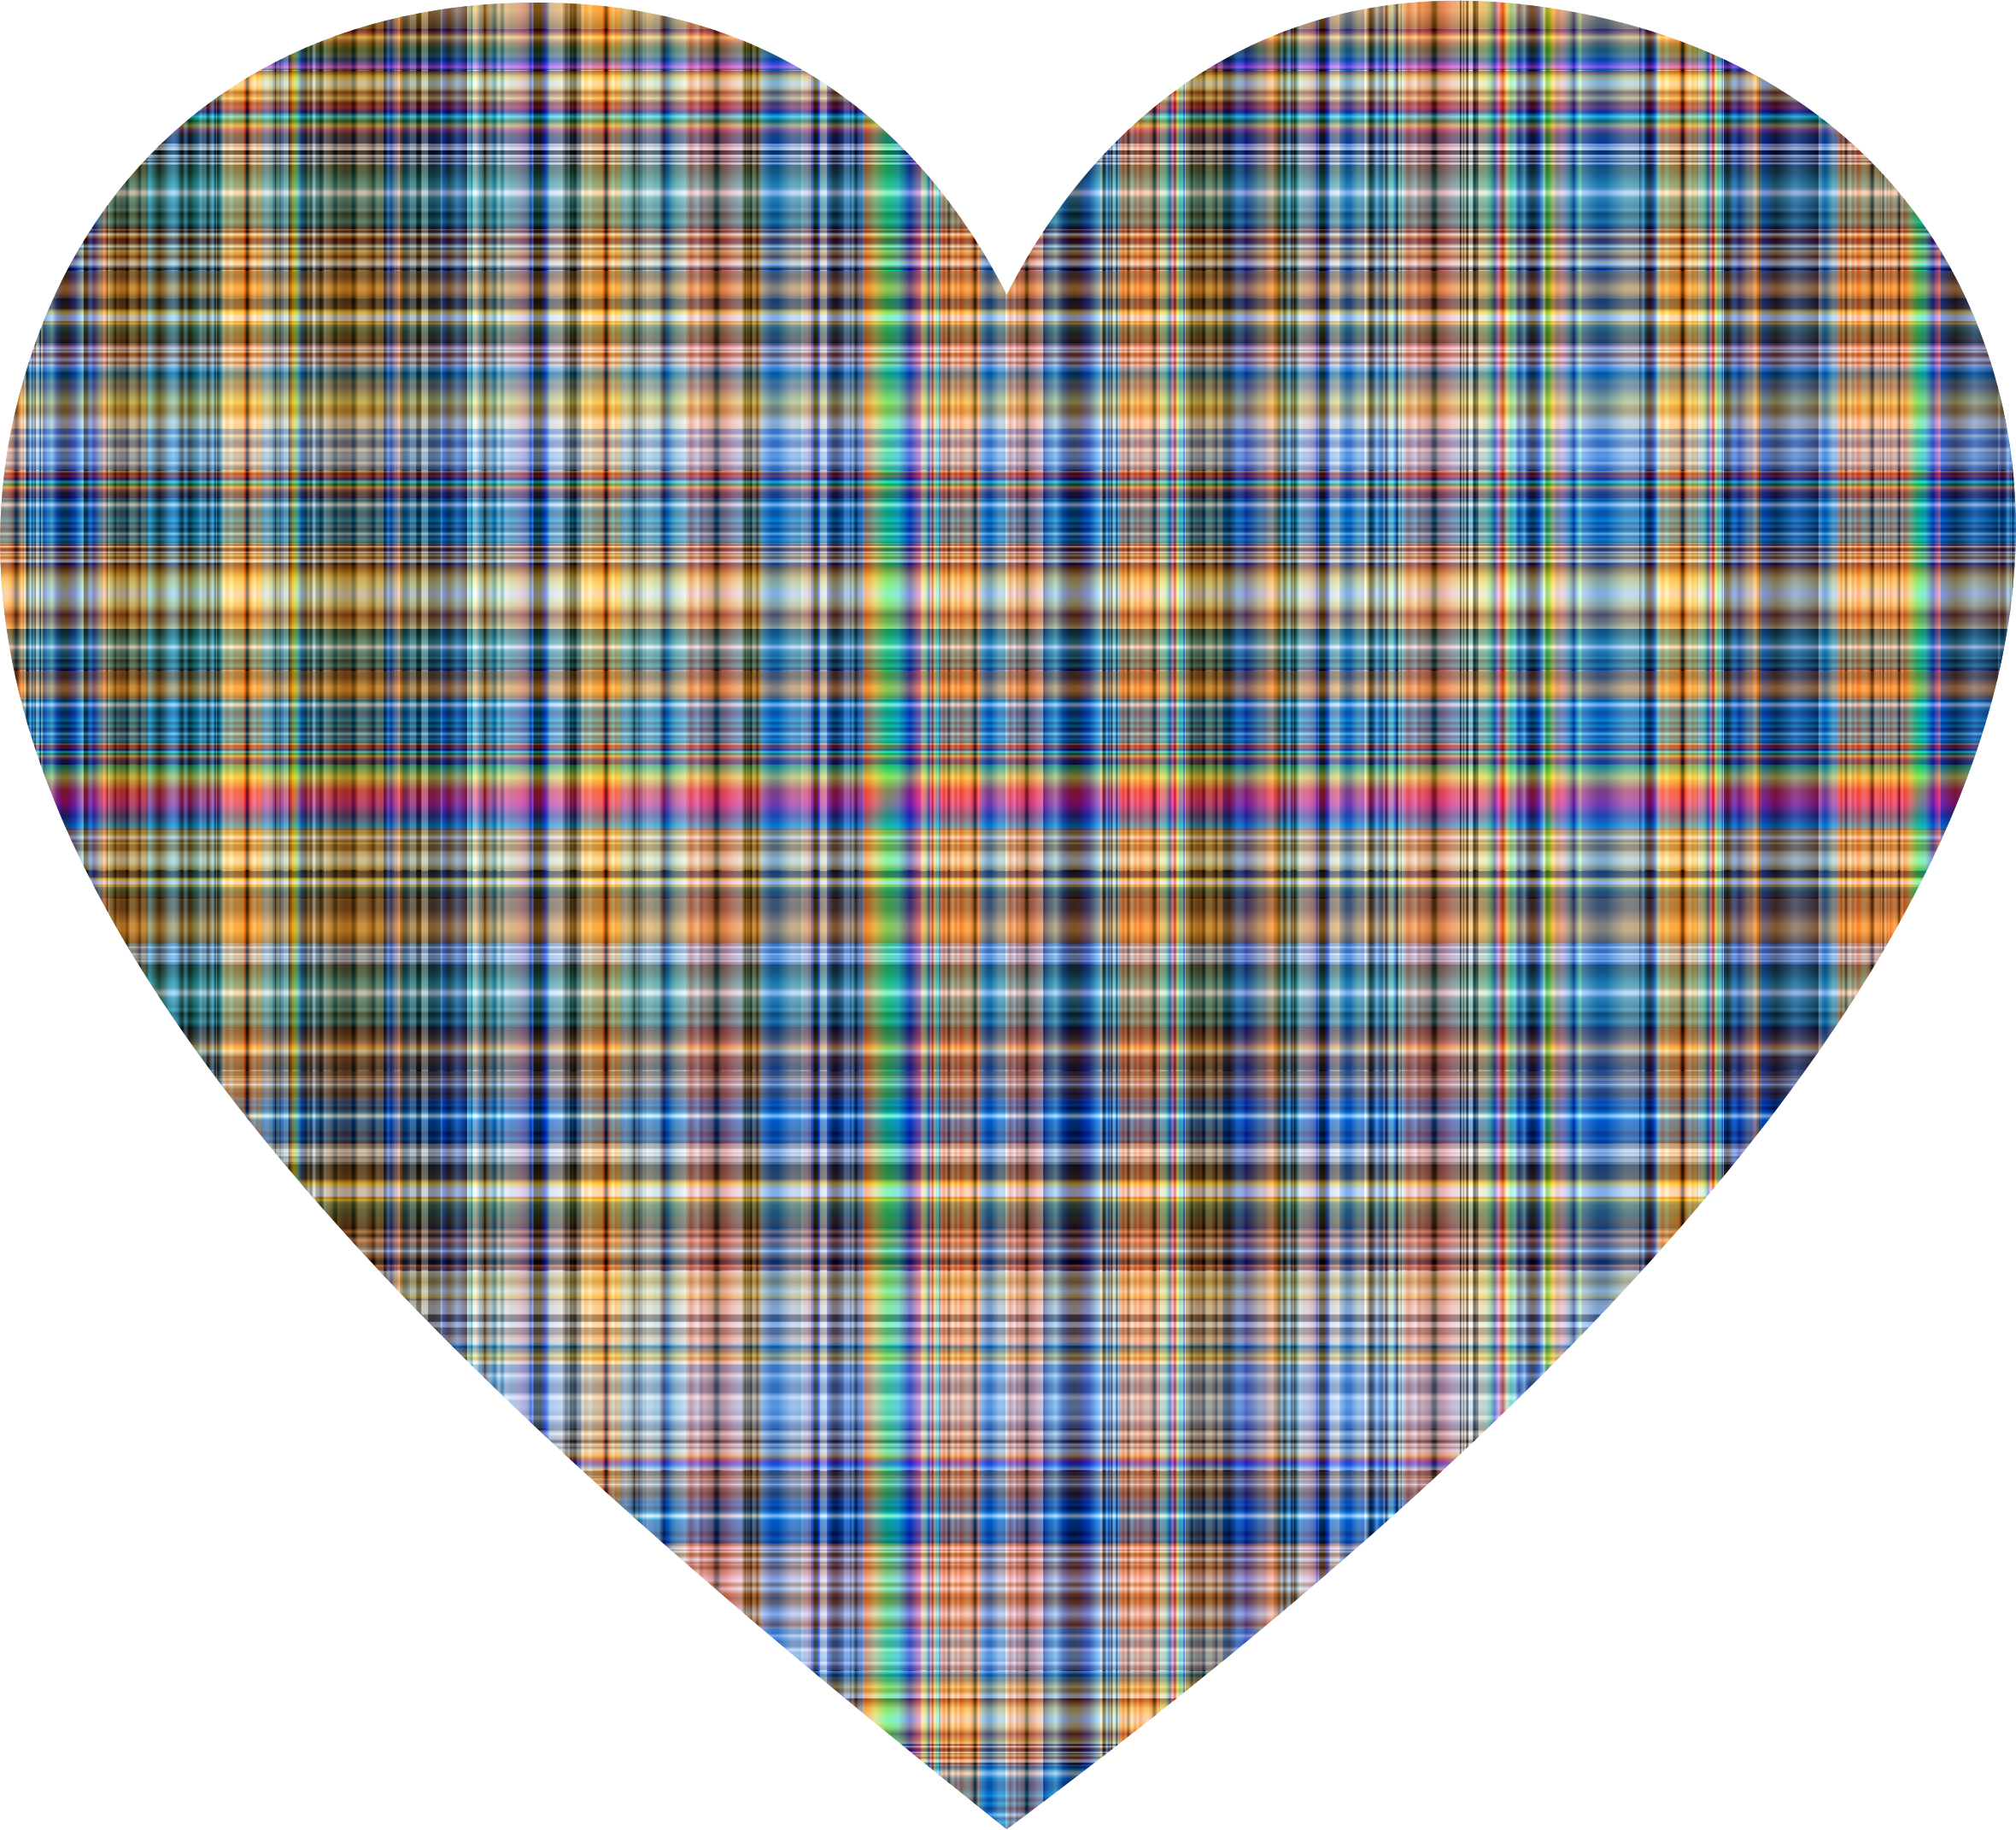 Heart clipart plaid. Colorful gingham big image